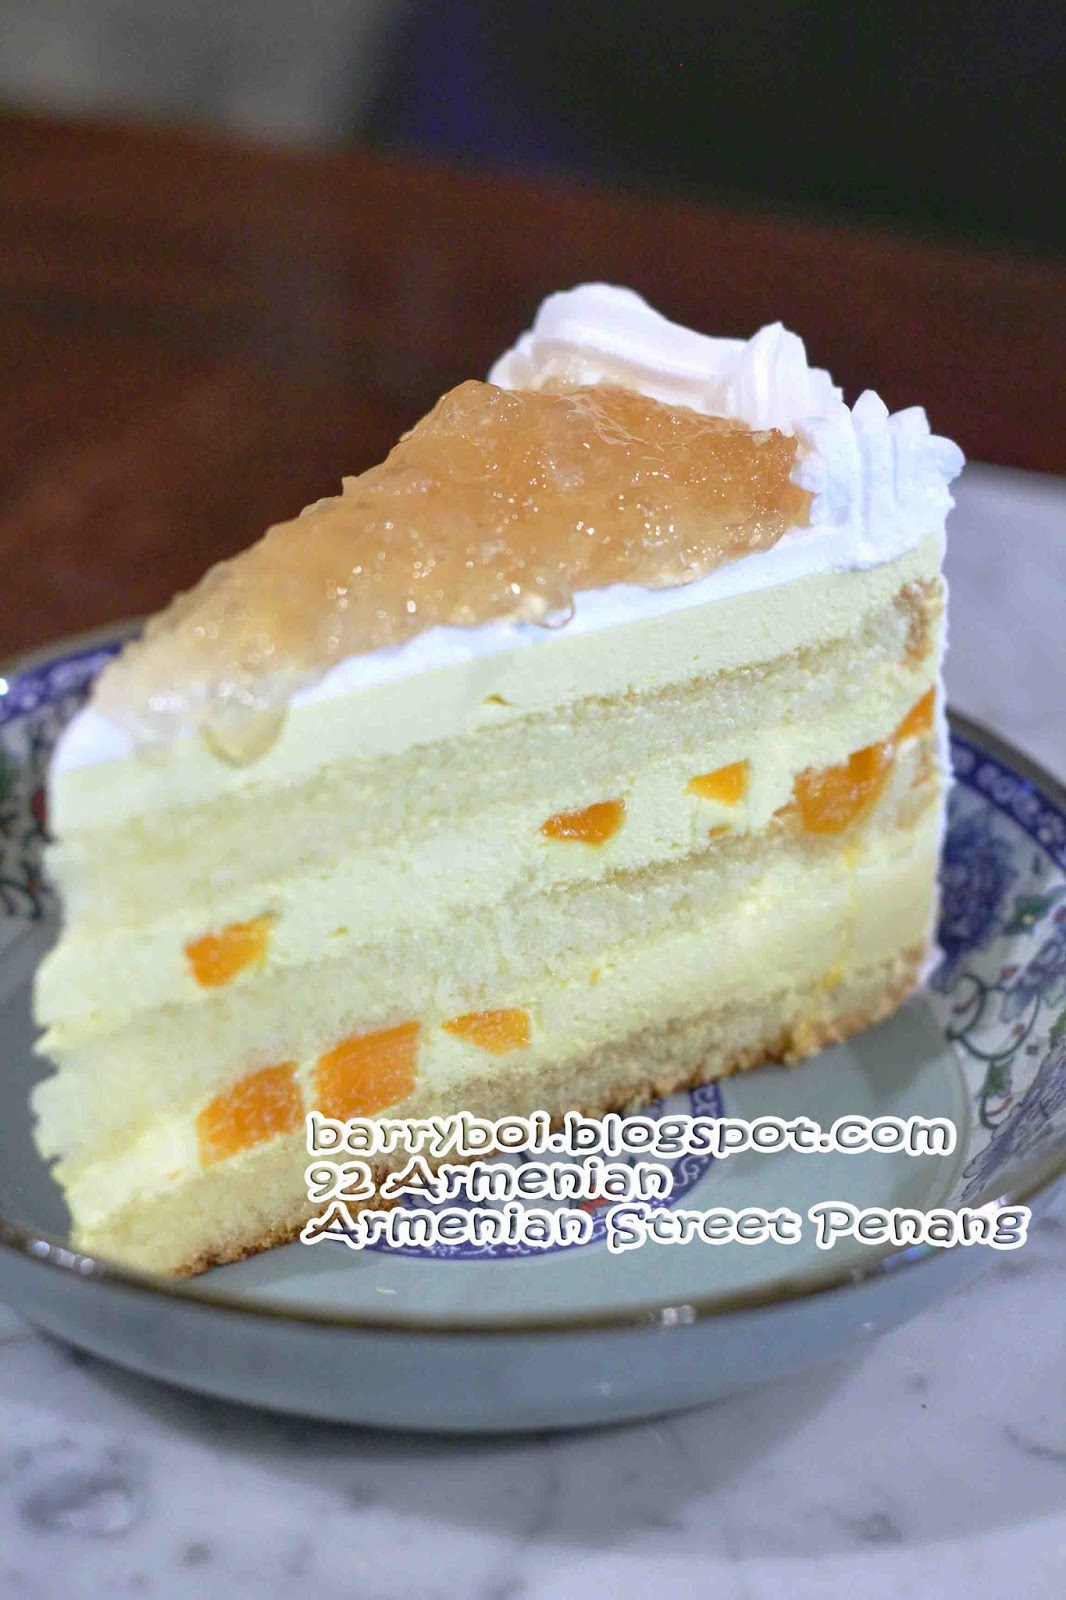 Layers Of Moist Sponge, With Chunks Of Sweet Delicious And Irresistible  Mango With Mango Flavoured Cream With A Spread Of Bird's Nest On It,